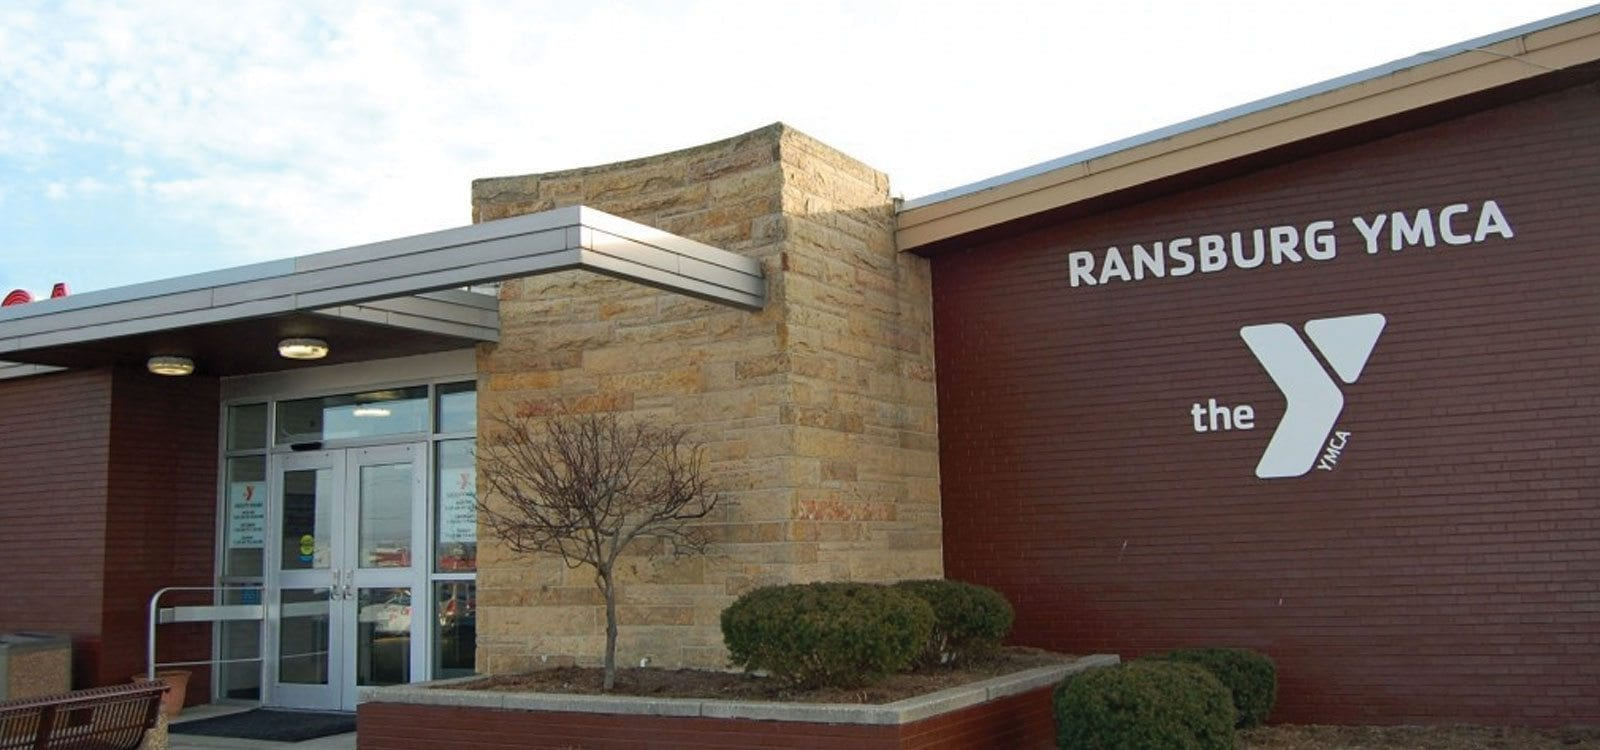 Ransburg YMCA | YMCA Centers | YMCA of Greater Indianapolis